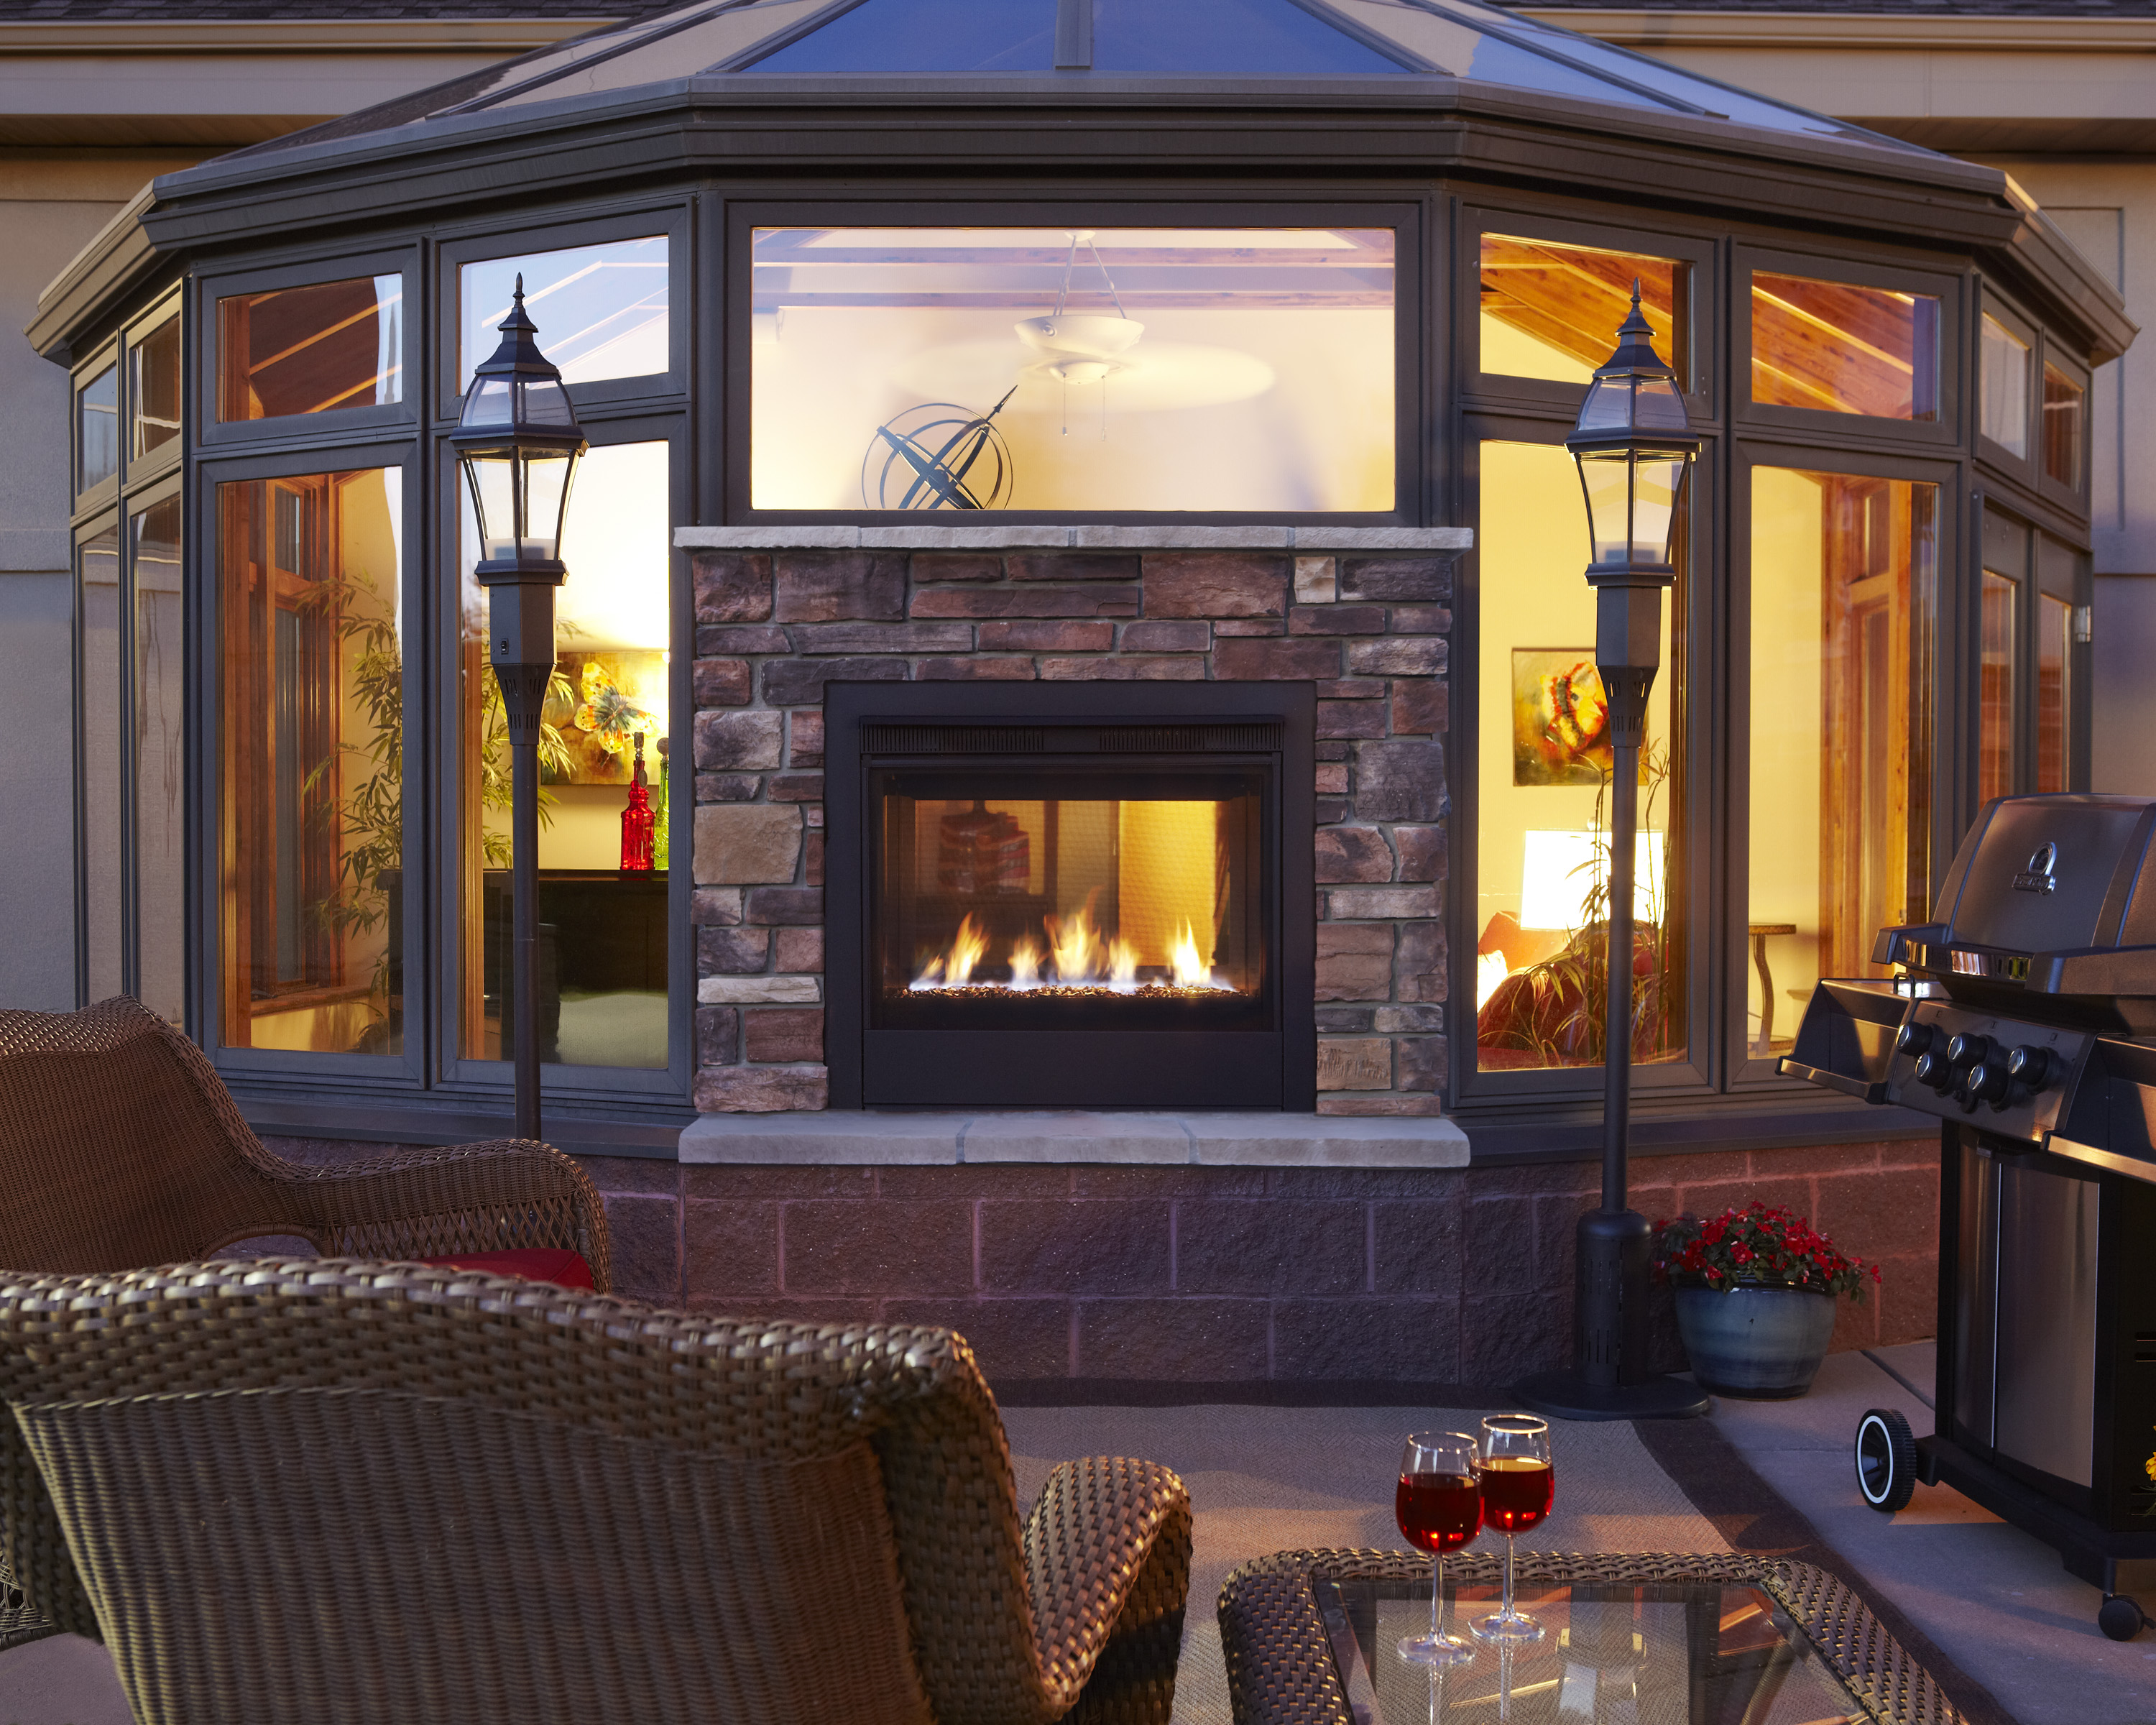 Luxury inside and out patio hearth blog - Houses outdoor fireplace ...